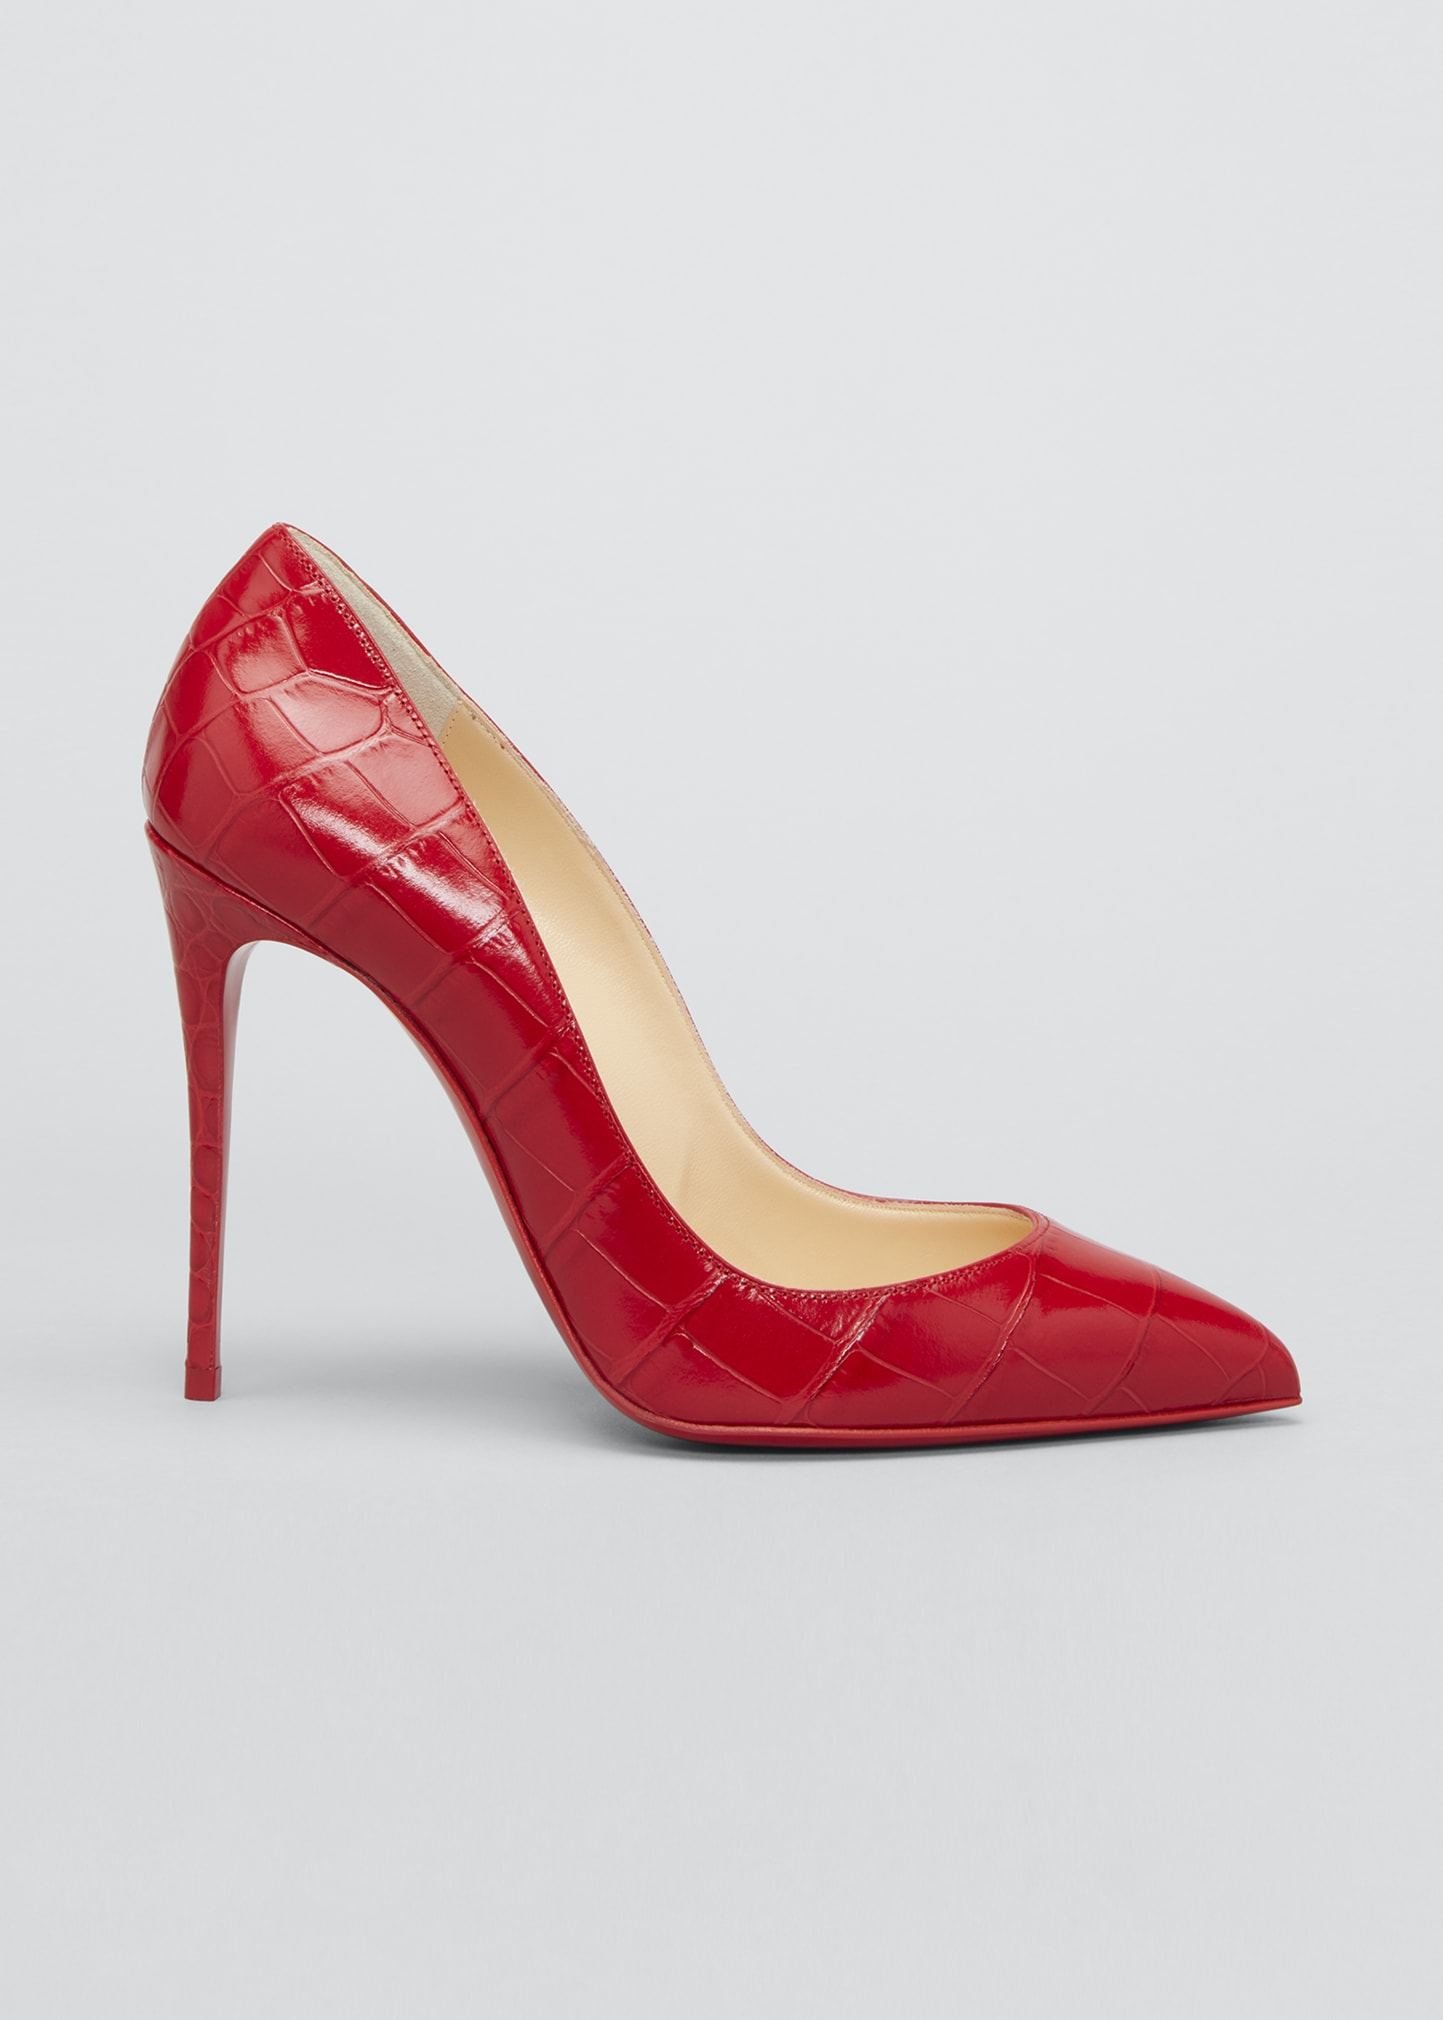 Pigalle Follies Mock-Croc 100mm Red Sole Pumps